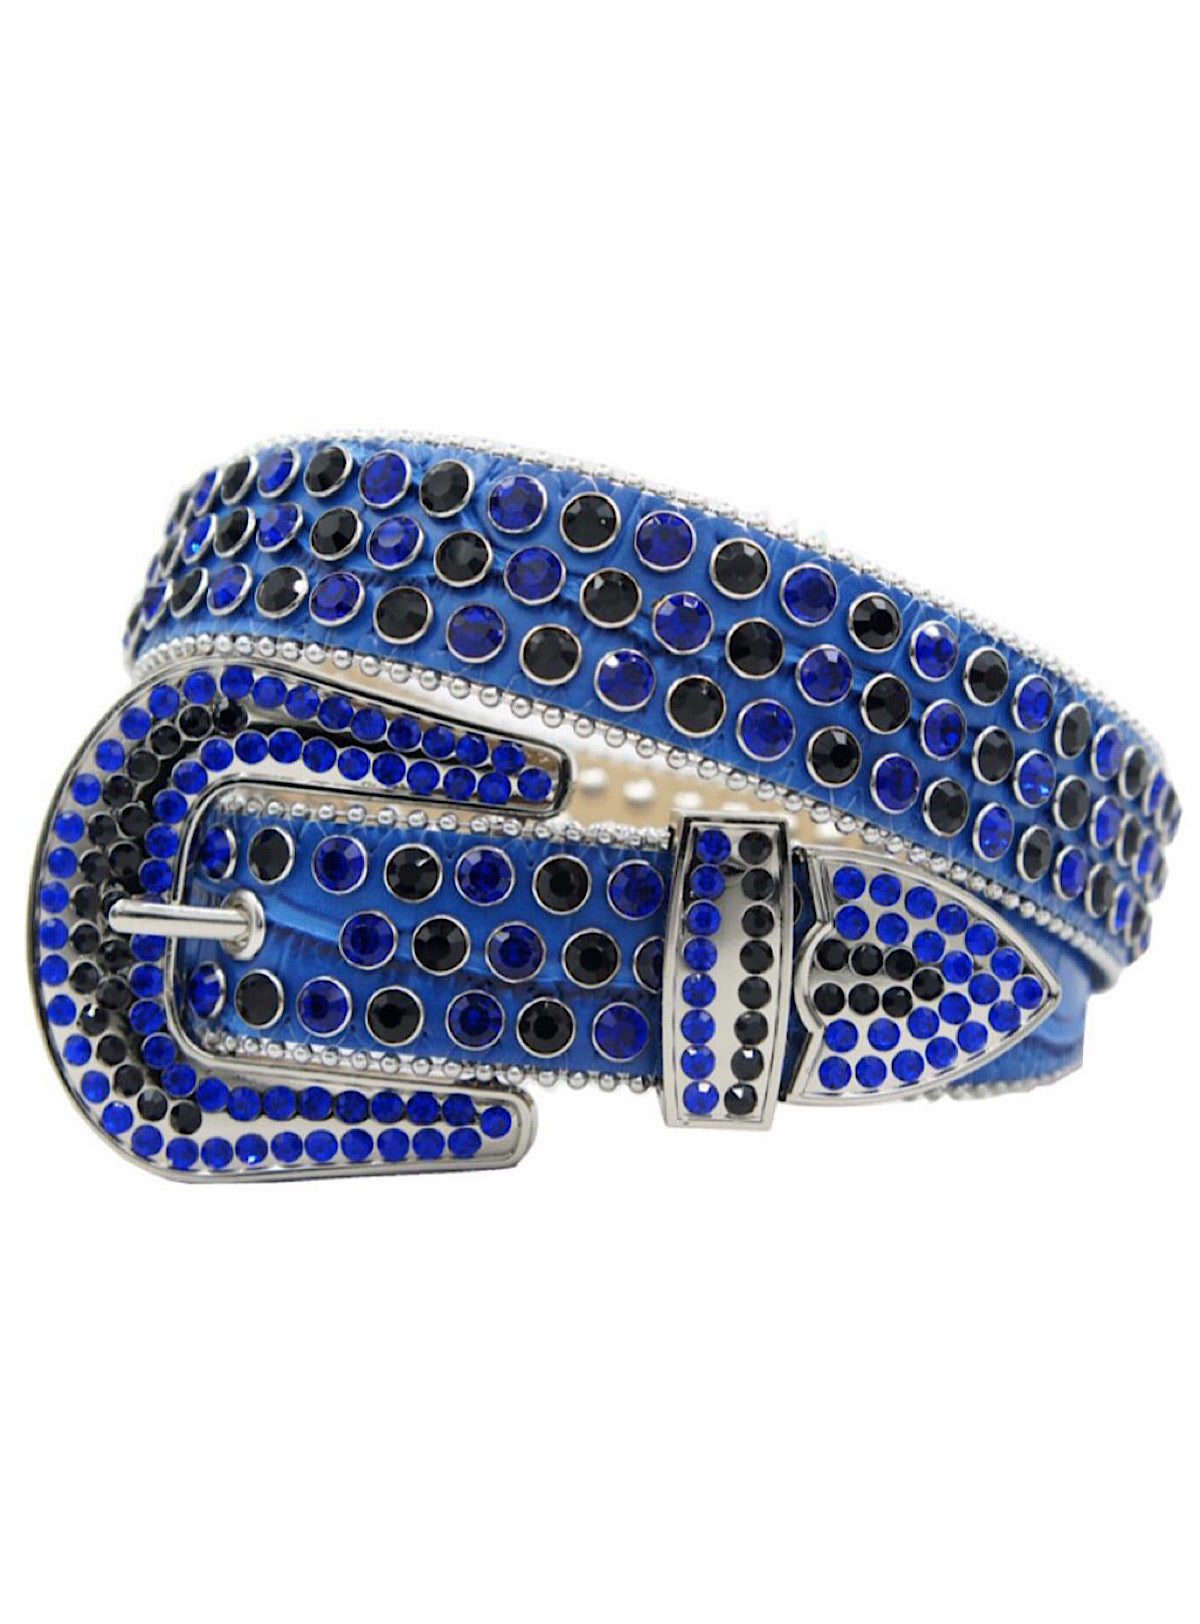 DNA Belt - Snake Skin - Blue With Black And Blue Stones